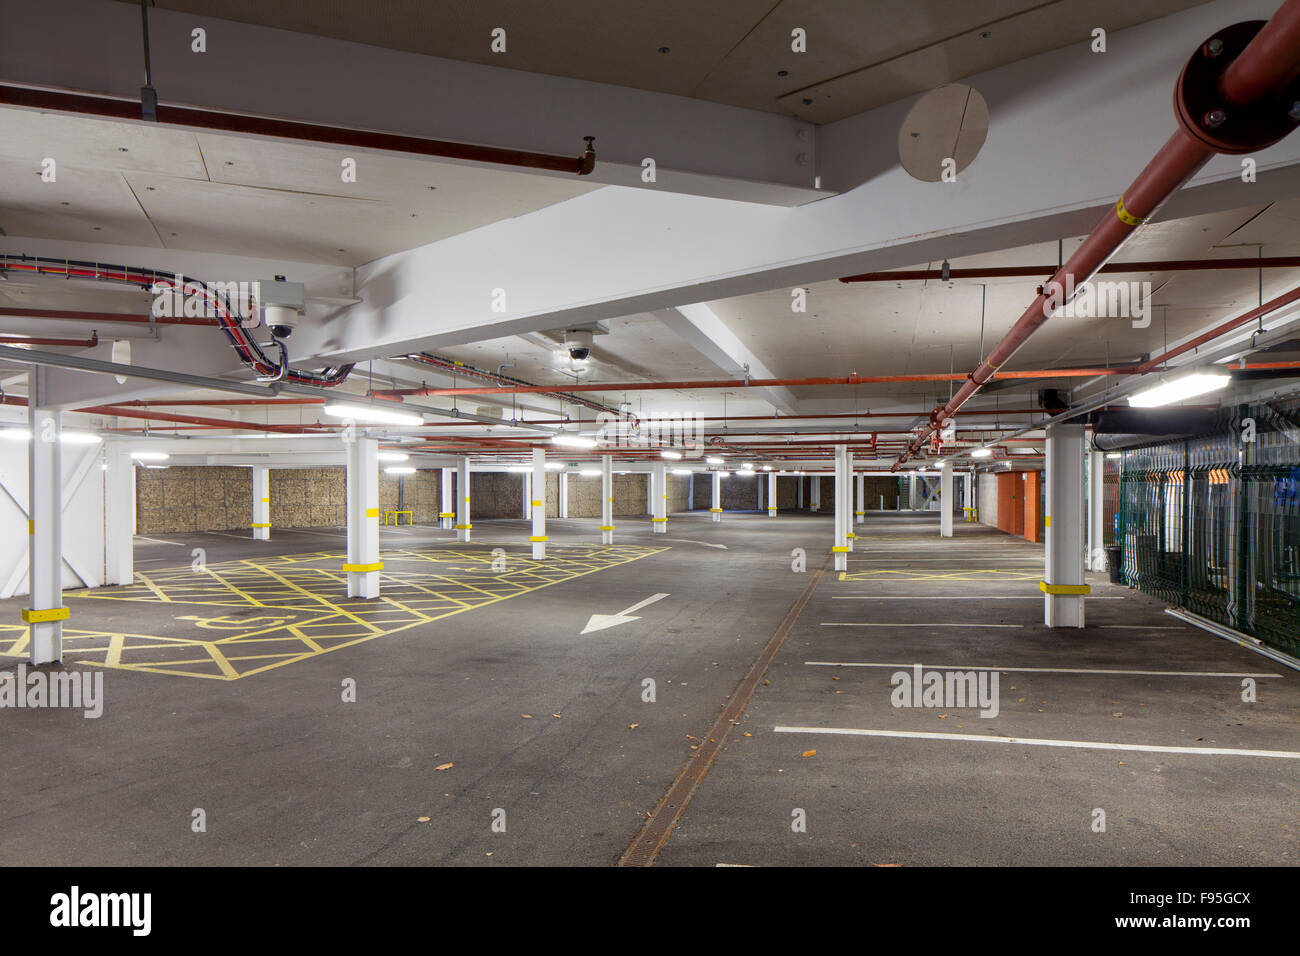 Waterhead Academy, Oldham. View of the car park of the Waterhead Academy. - Stock Image